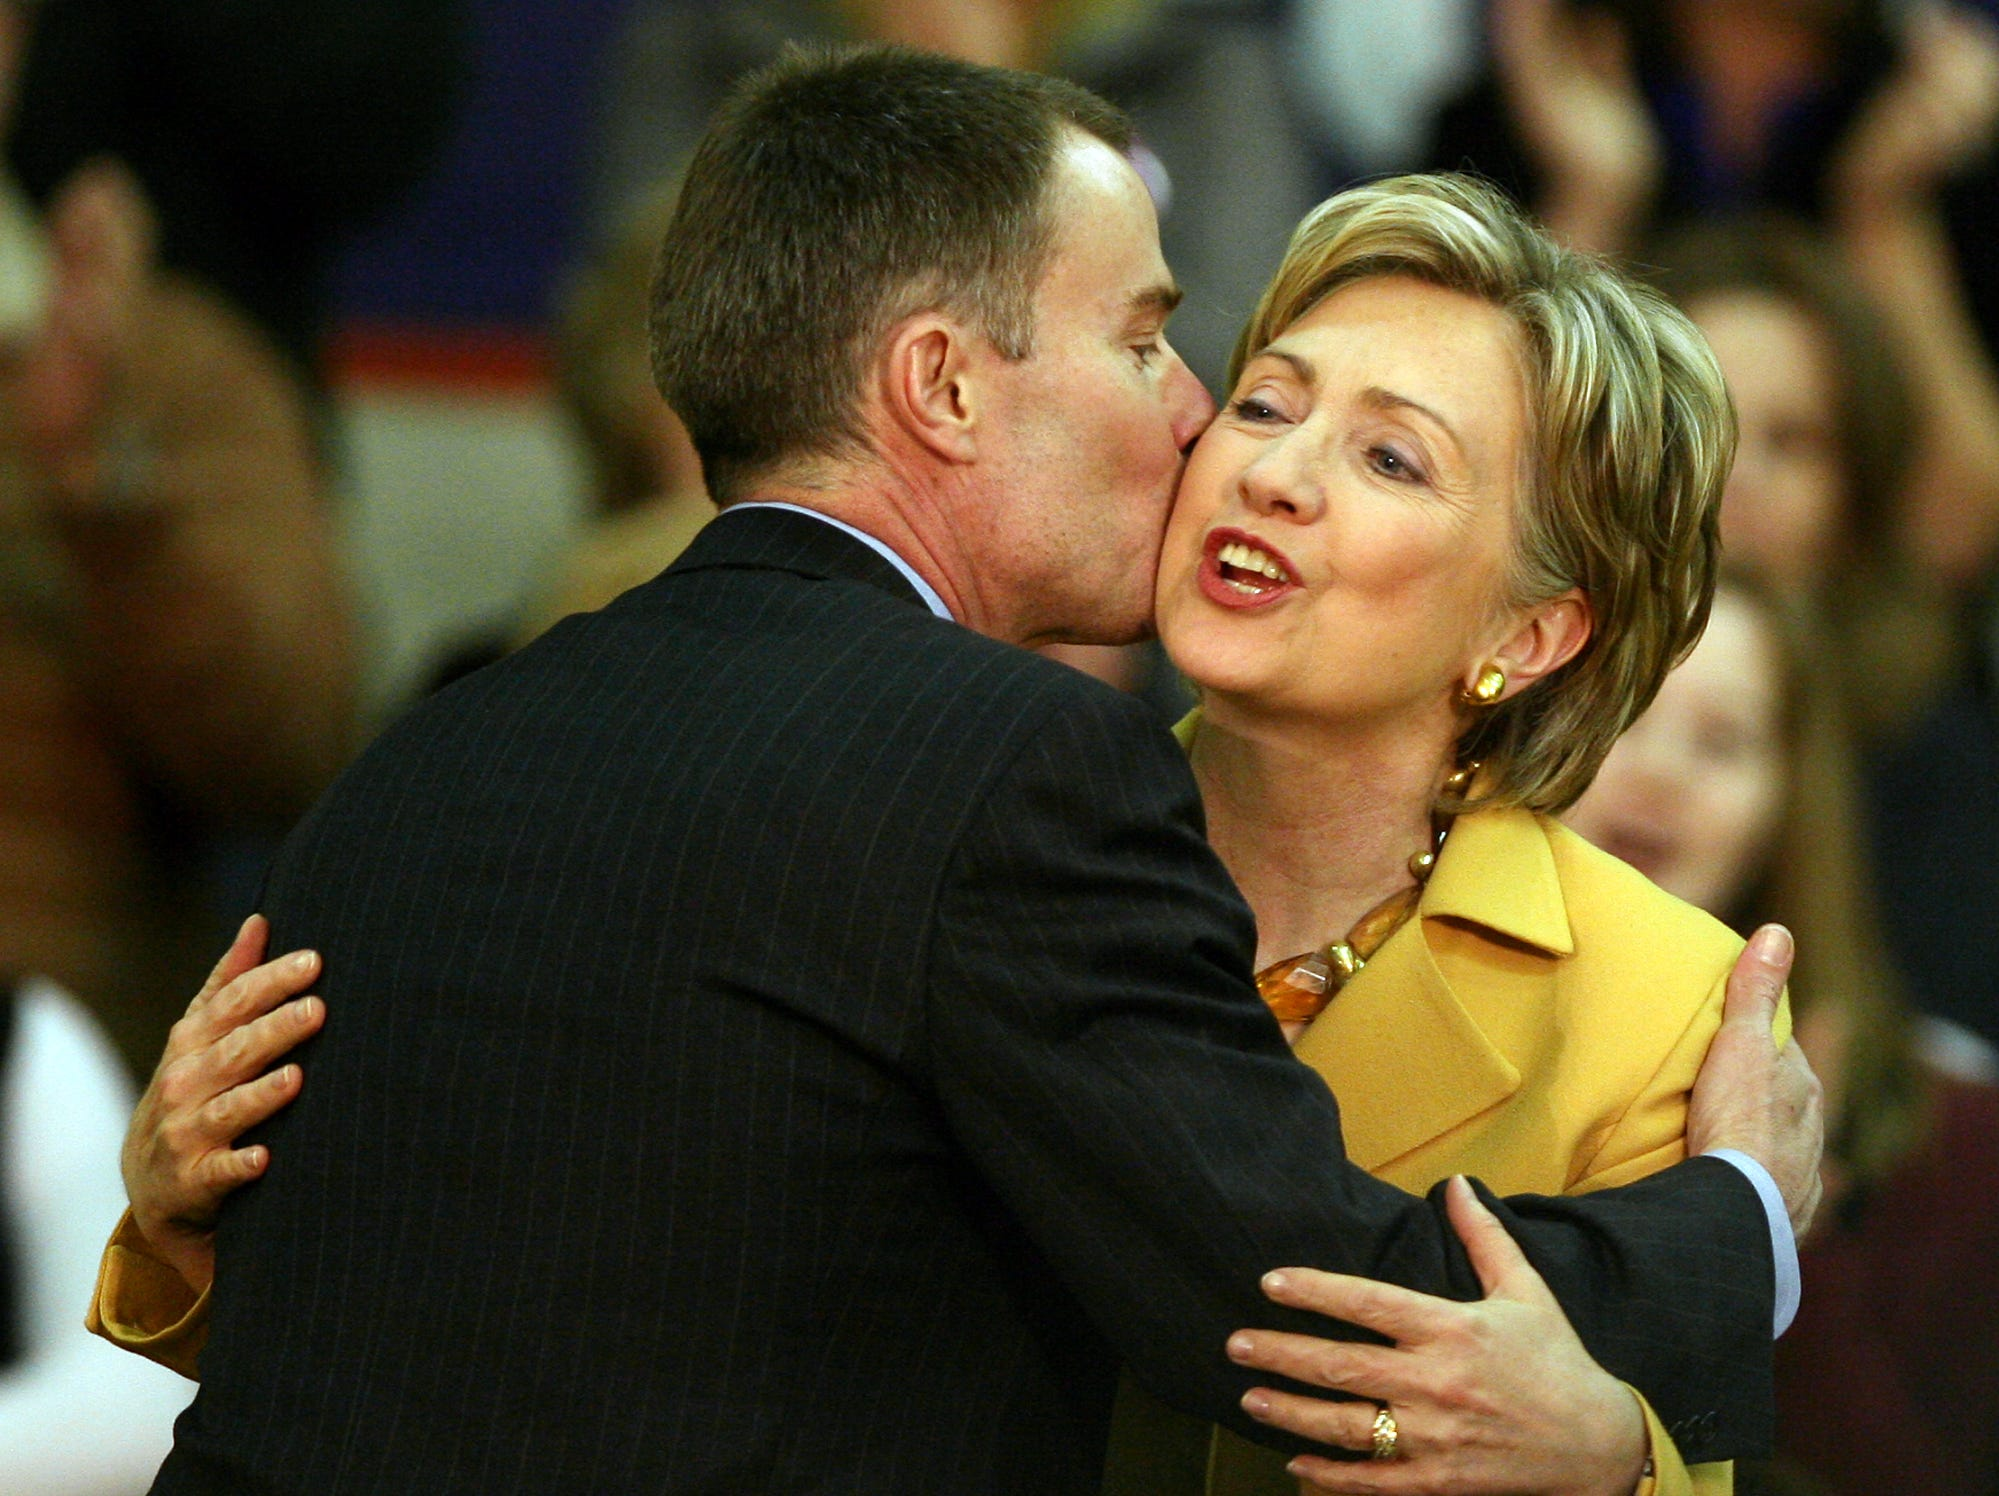 Presidential candidate Hillary Clinton gets a hug from Joe Hogsett after being introduced at Muncie Central High School in 2008.